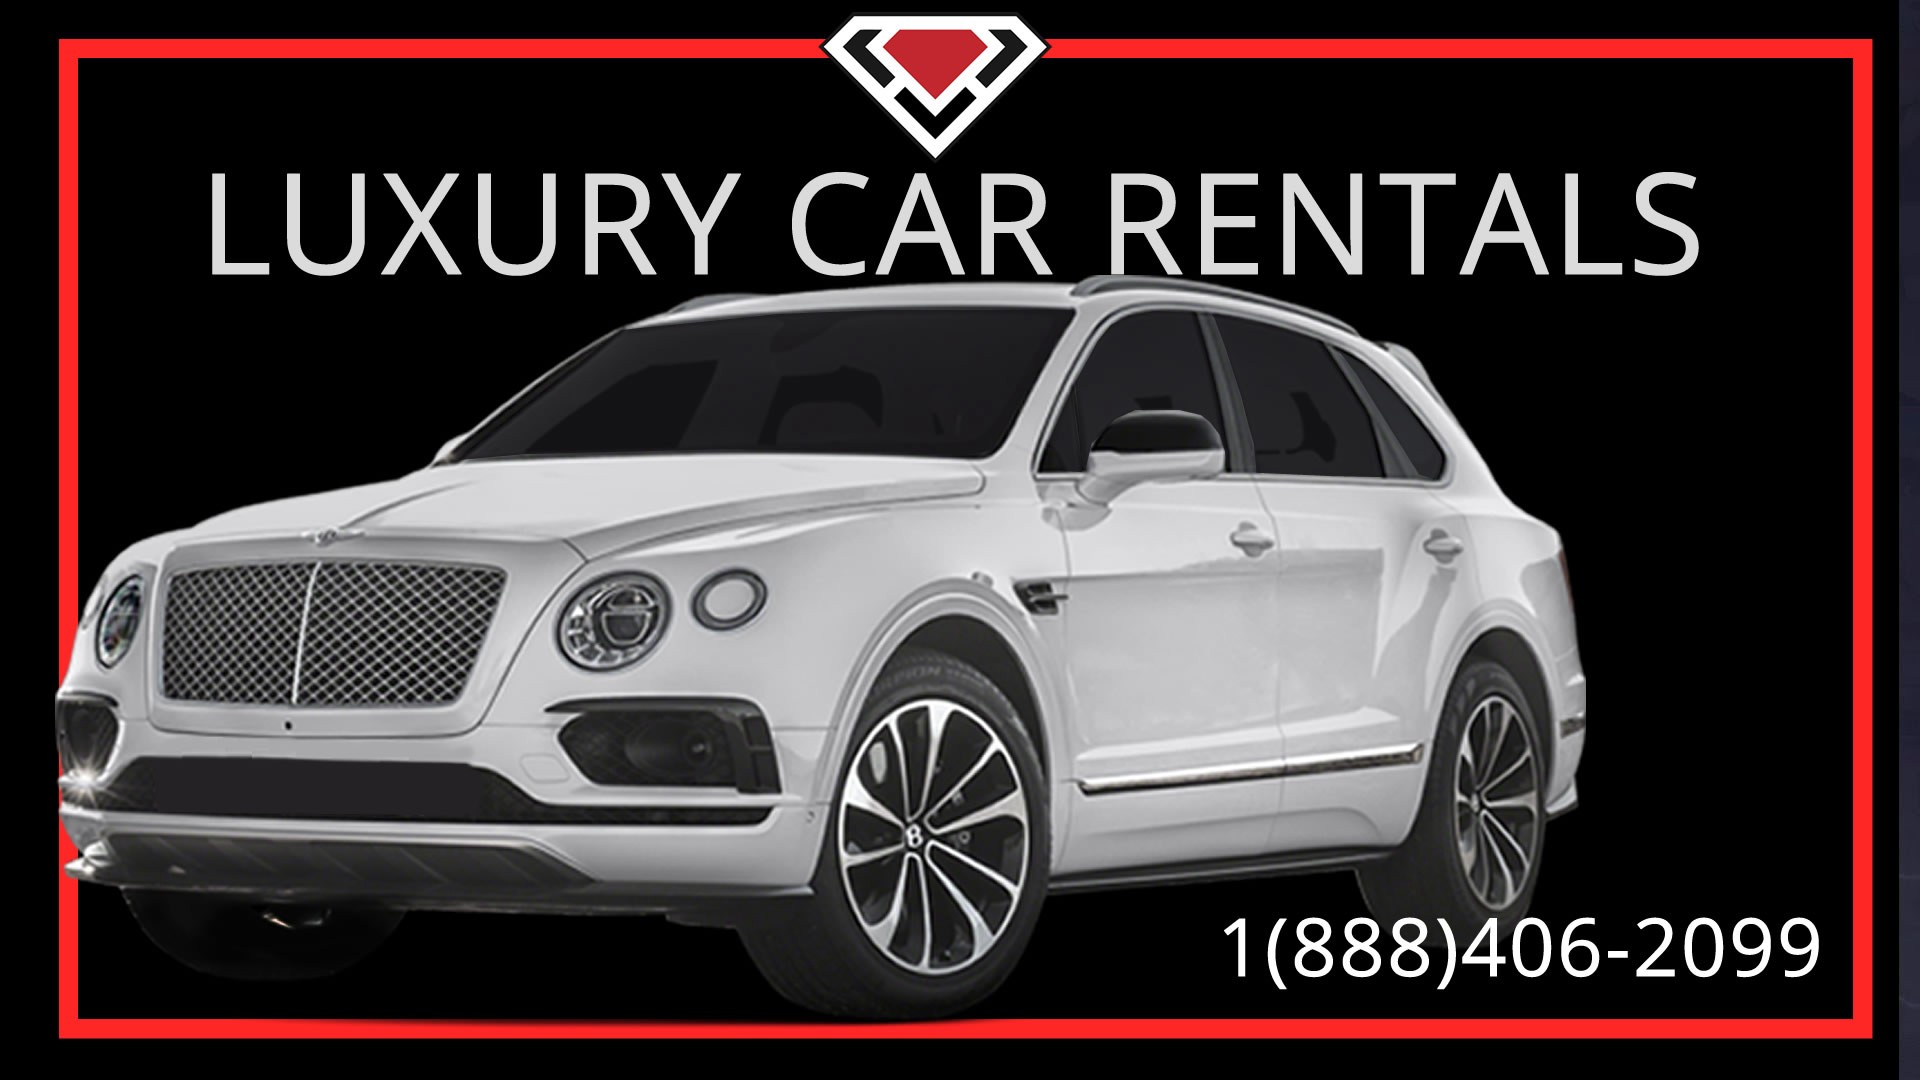 rent la and experience comfortable mulsanne in should sophisticated style customized time this services lodging always vip arranging a bentley spent for never memorable be travel en was vie service